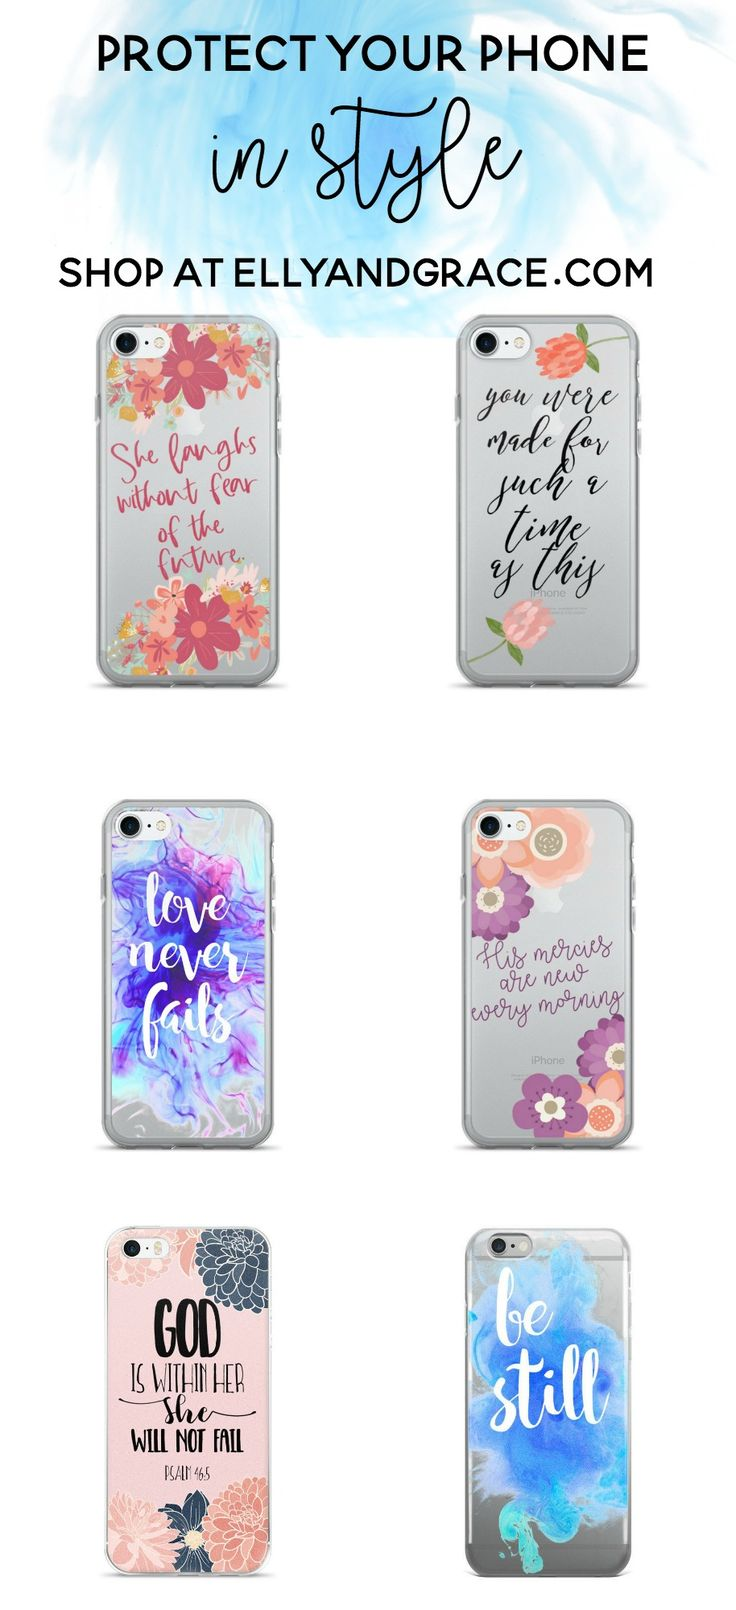 Trendy christian phone cases. Christian iPhone cases for women. Available in iPhone 5, 6, and 7.